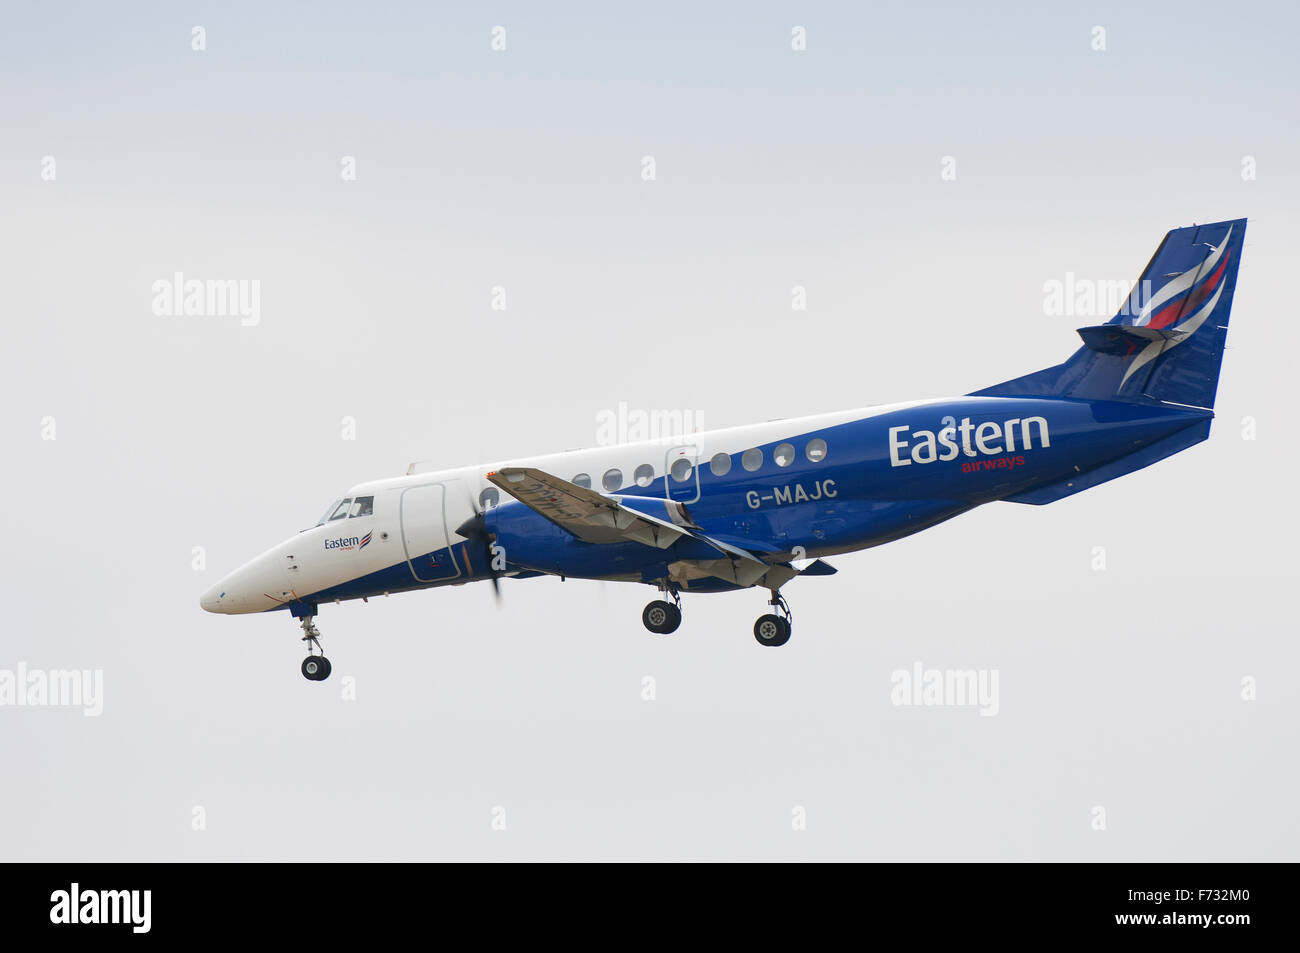 Eastern Airways British Aerospace Jetstream 4100 G-MAJC coming in to land at Inverness Airport, Scotland, UK. - Stock Image